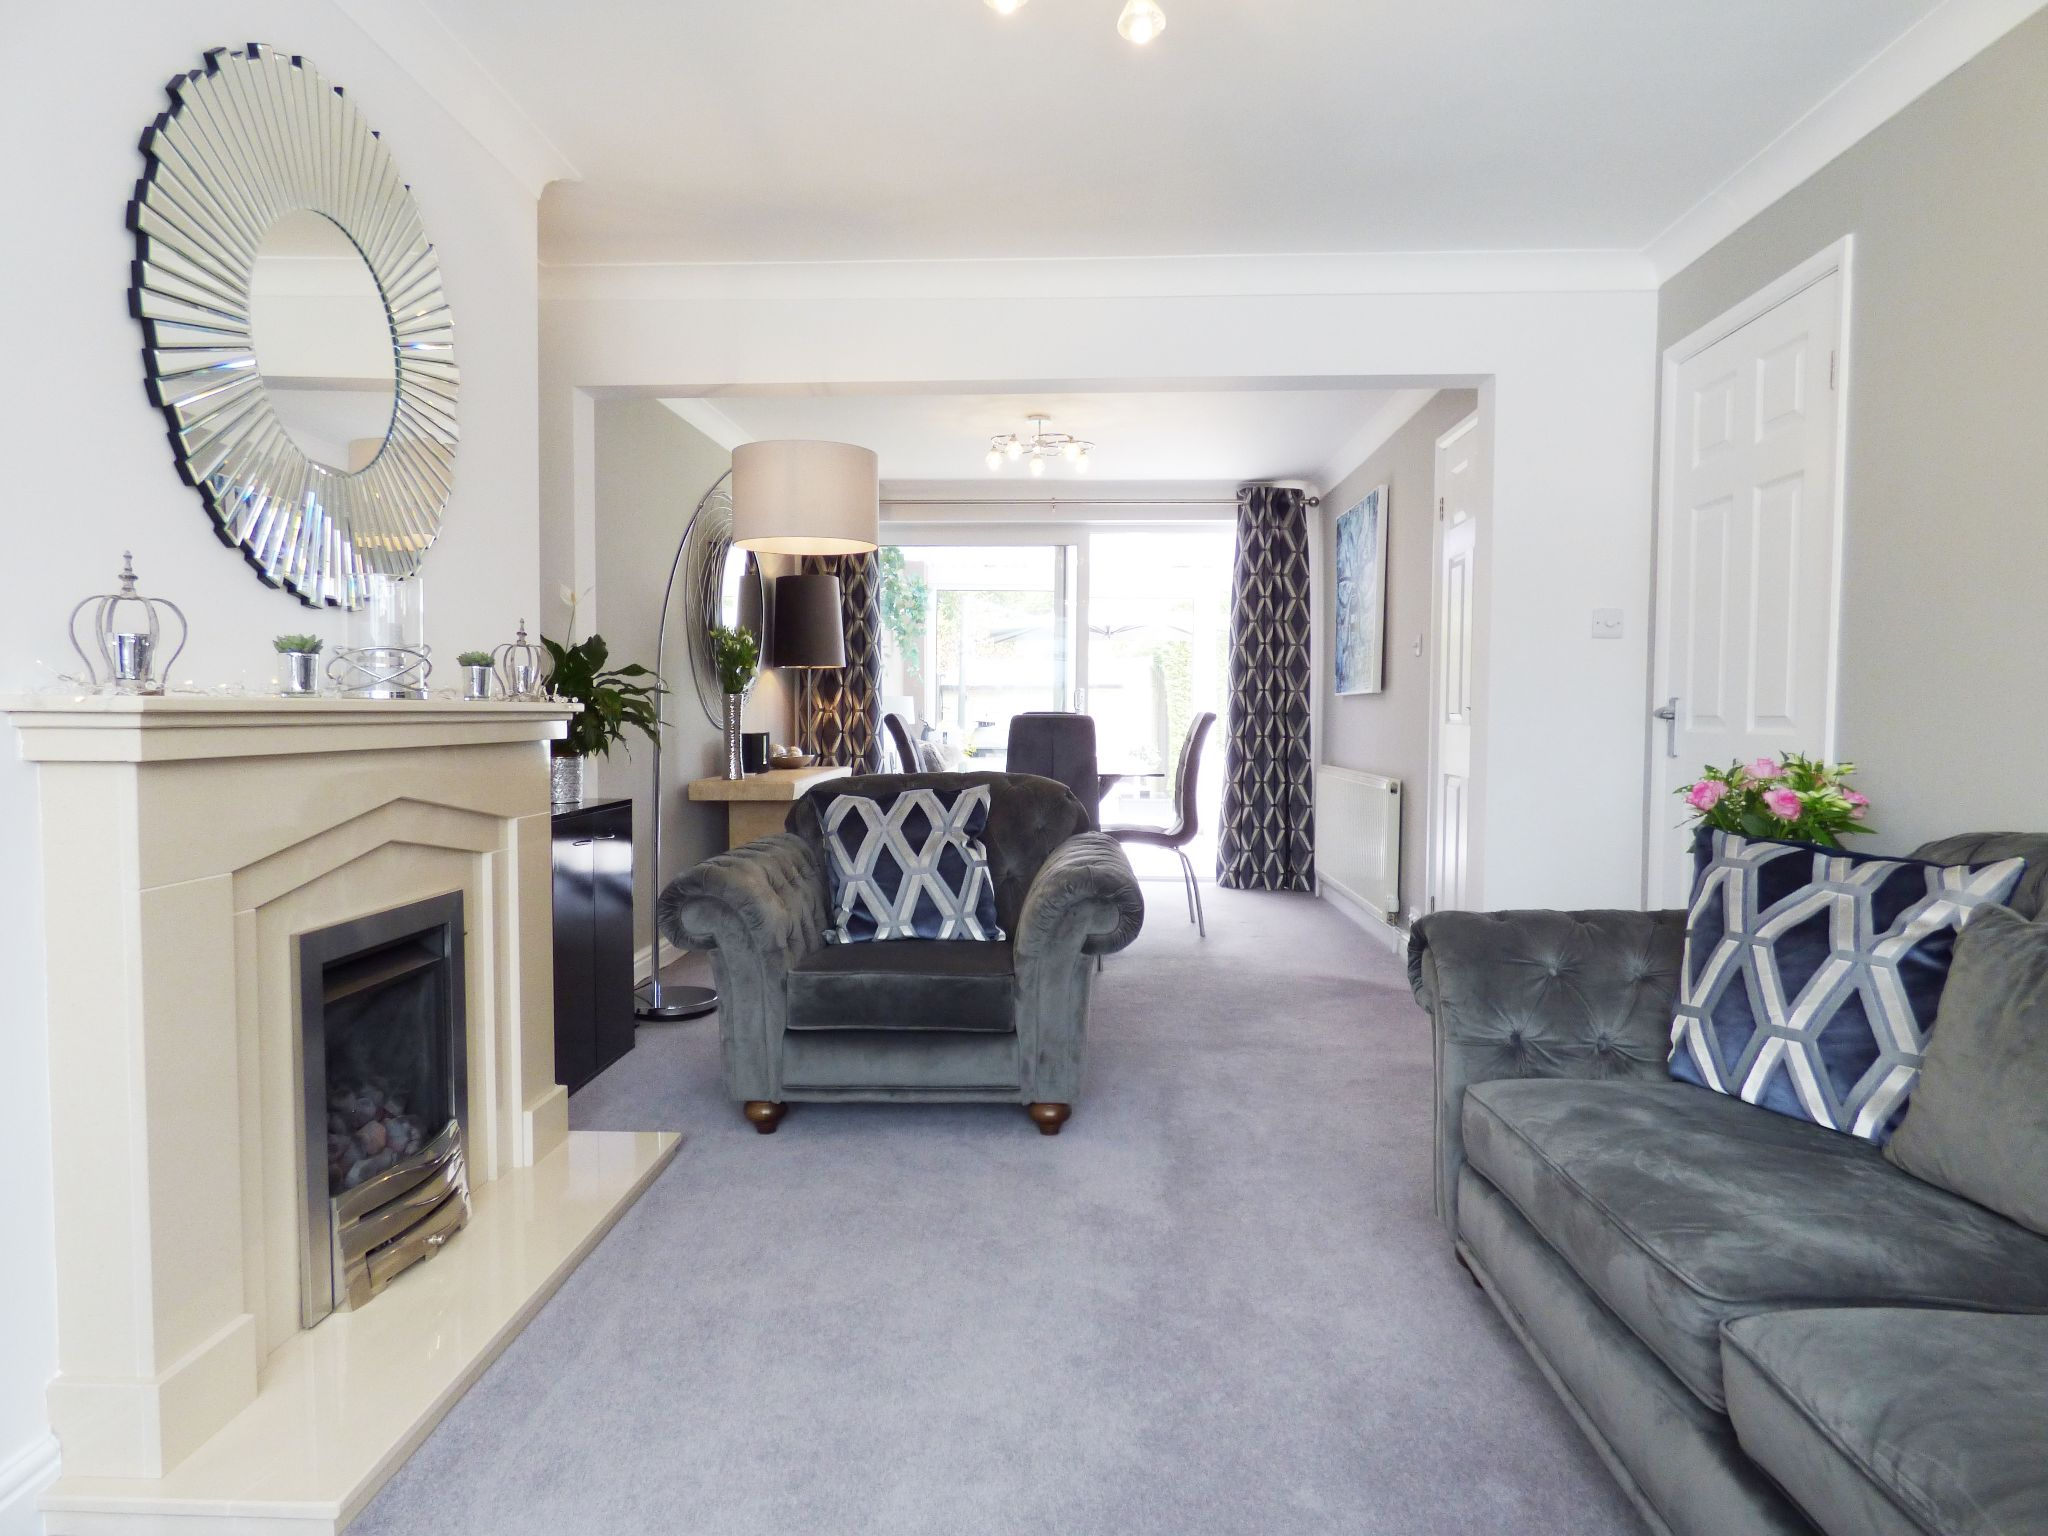 5 Bedroom Semi-detached House For Sale - Lounge